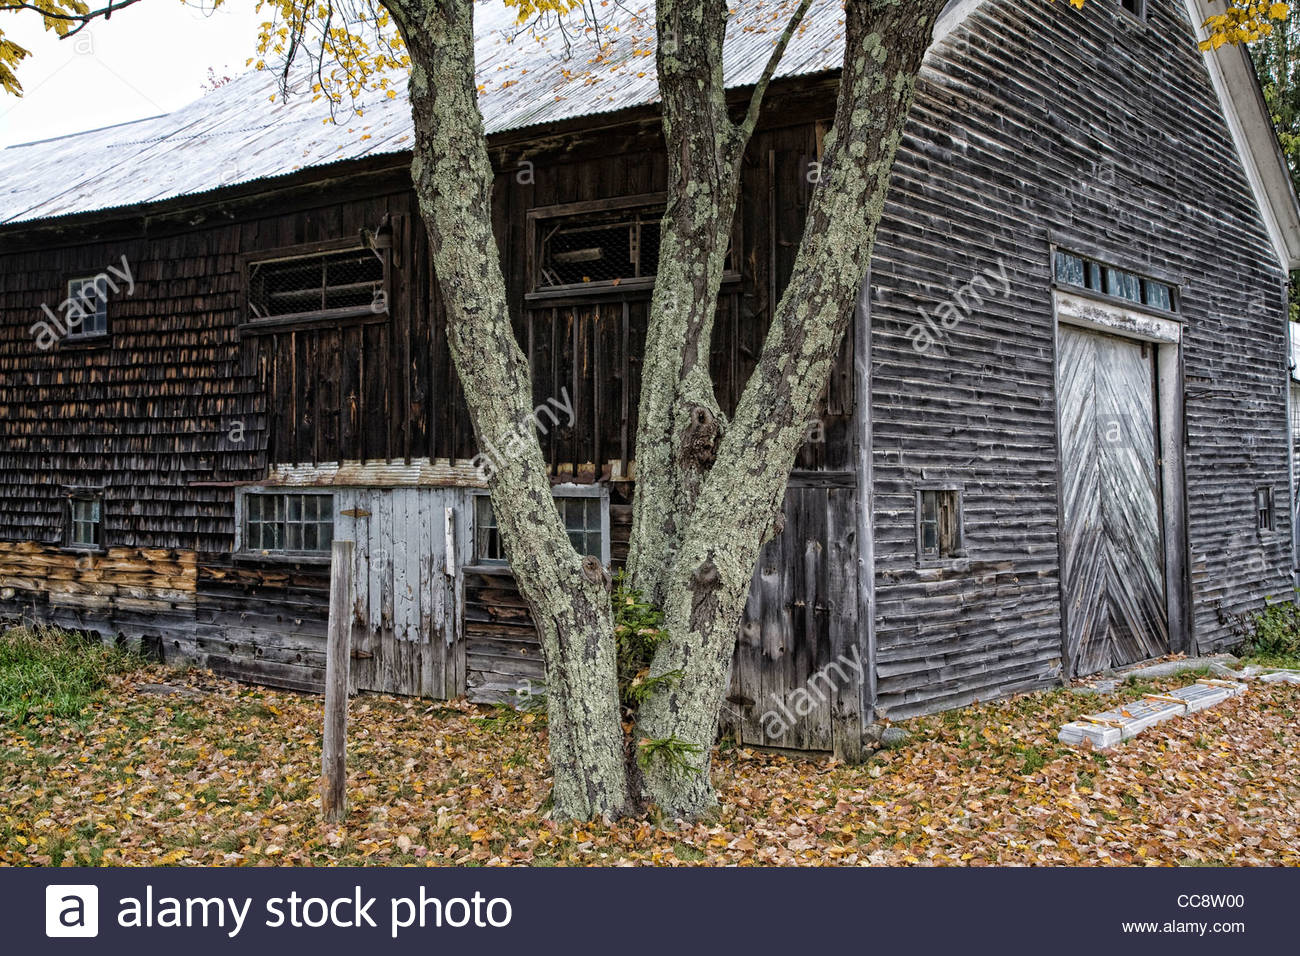 An old wood shake barn in rural Maine, USA. - Stock Image